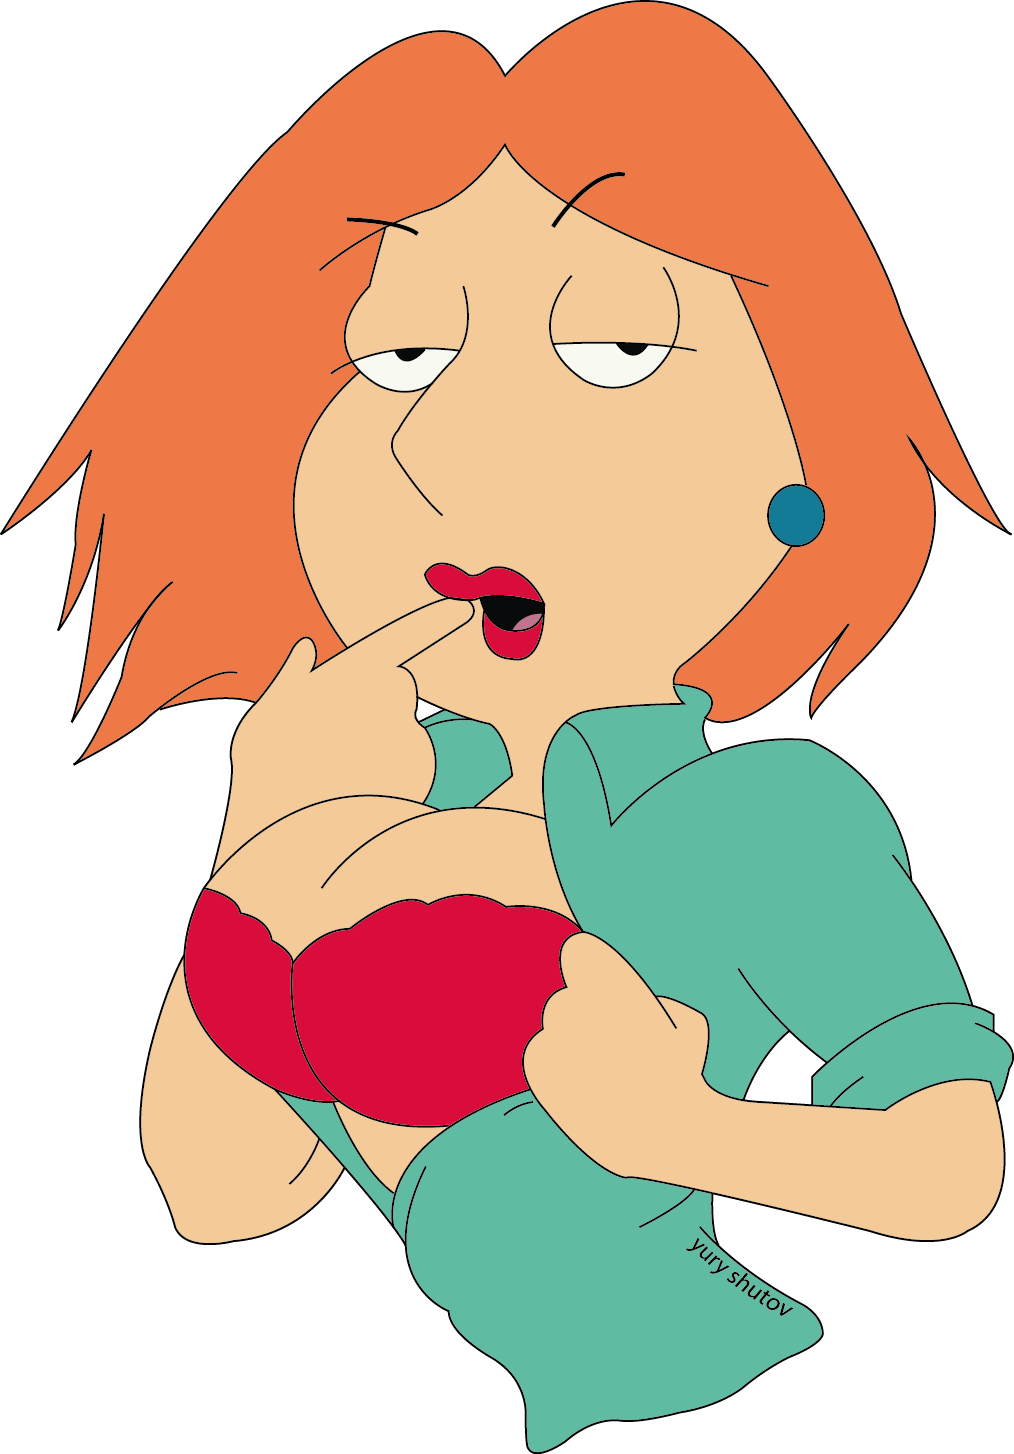 GOT cartoon bikini meg griffen